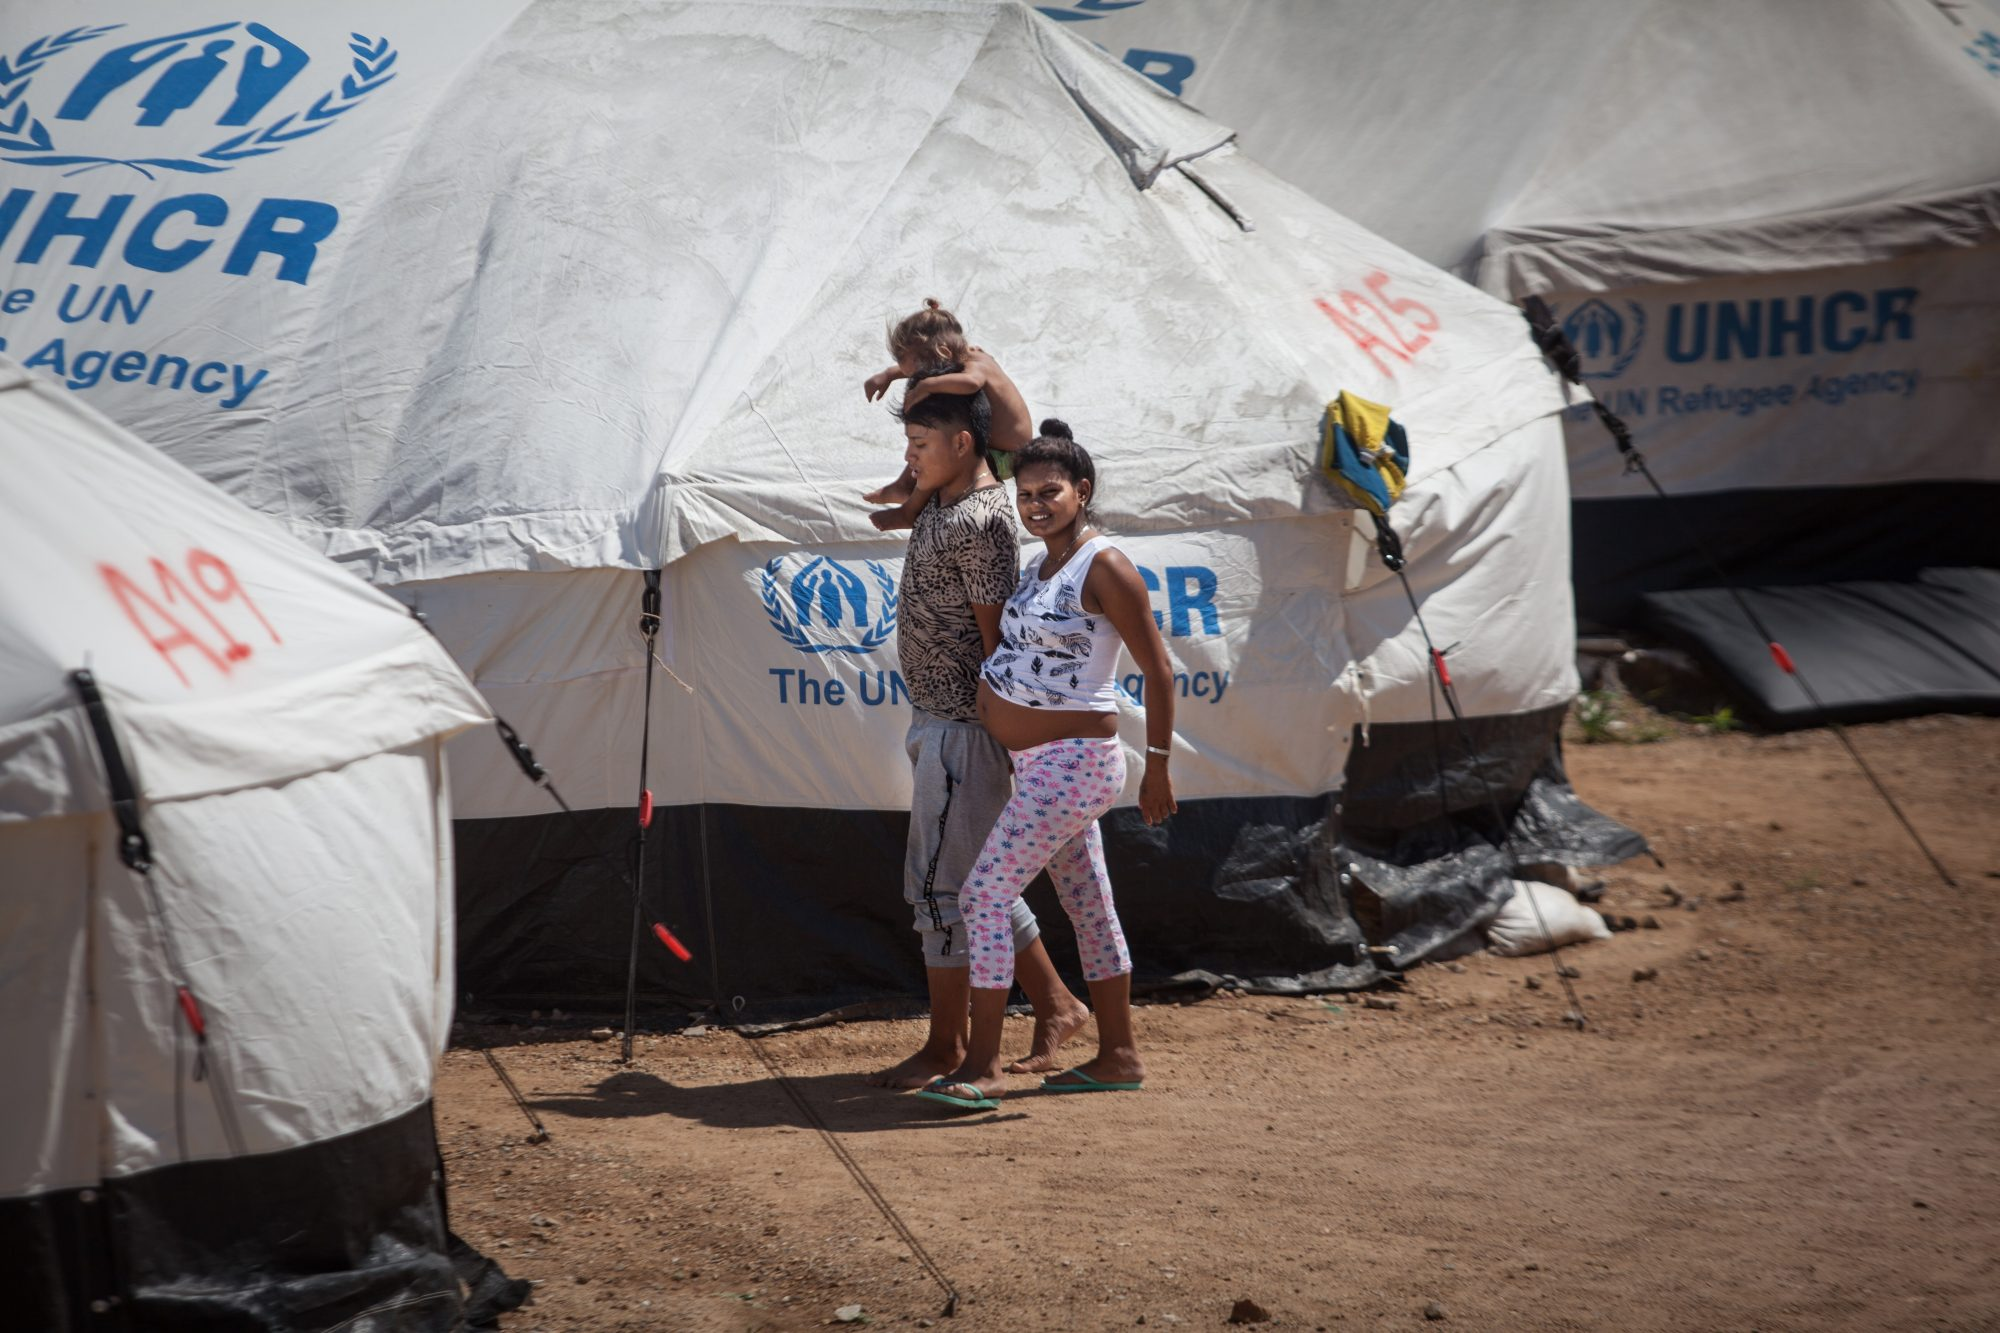 UNHCR camp in Maicao